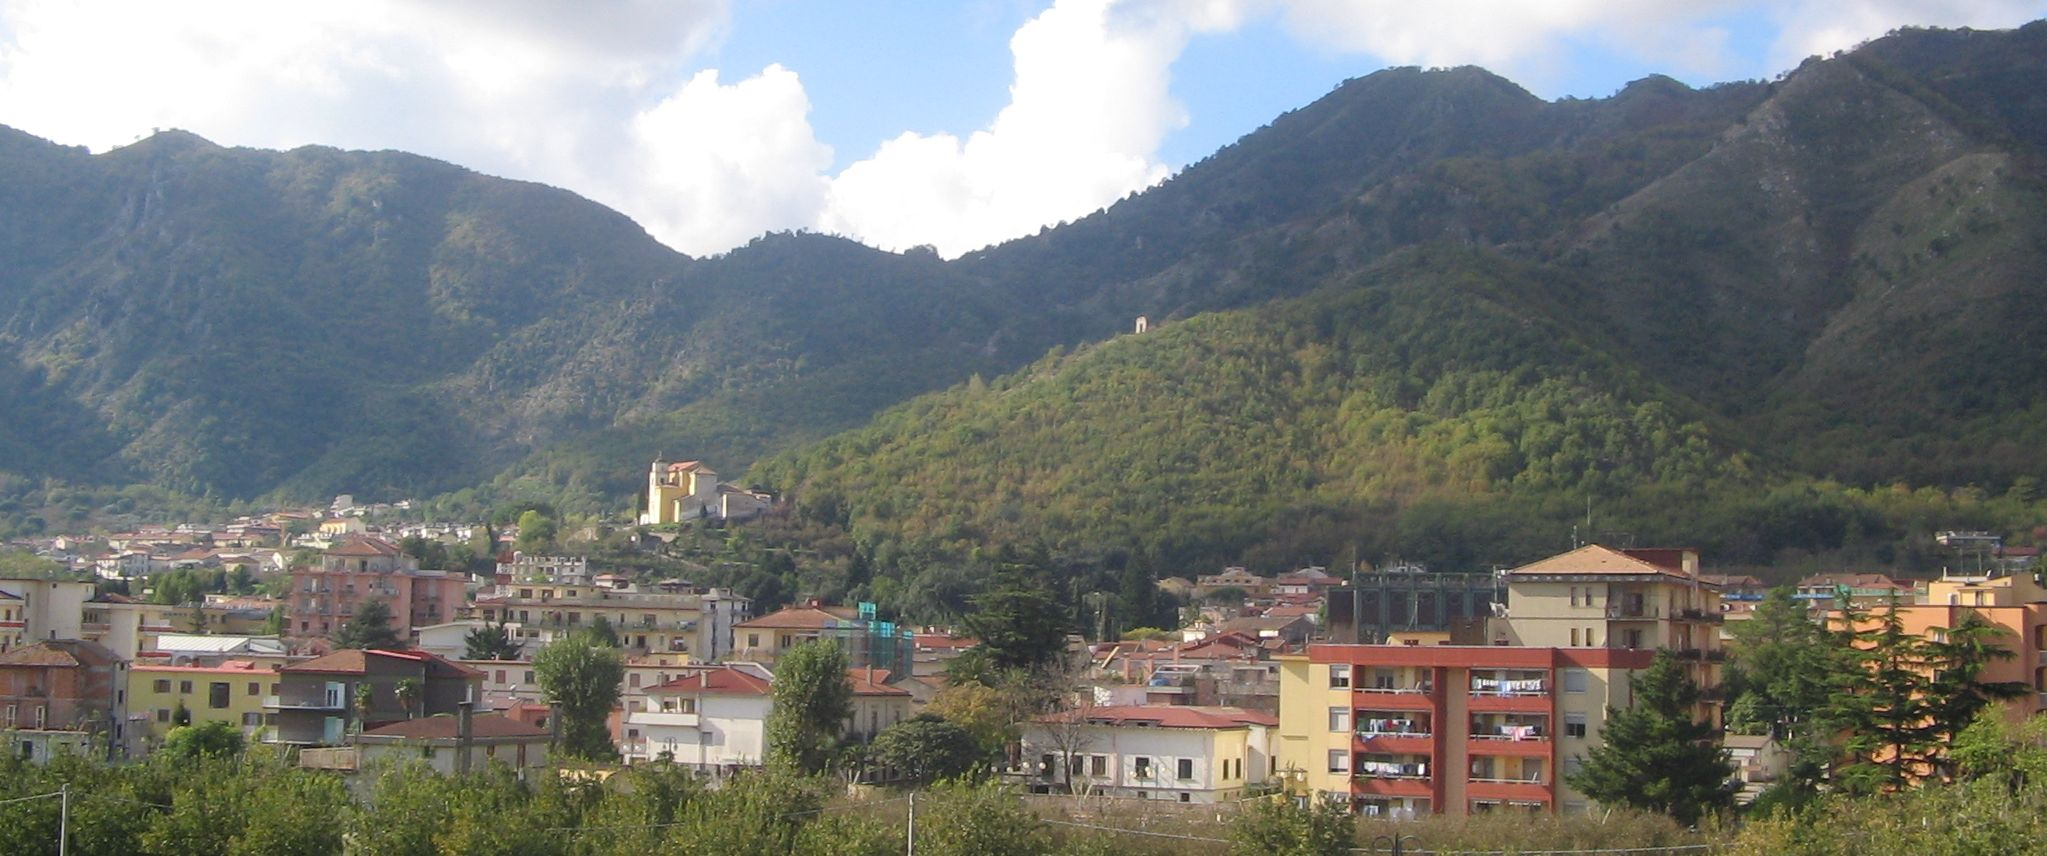 Baronissi Italy  City new picture : Baronissi Panorama Wikipedia, the free encyclopedia